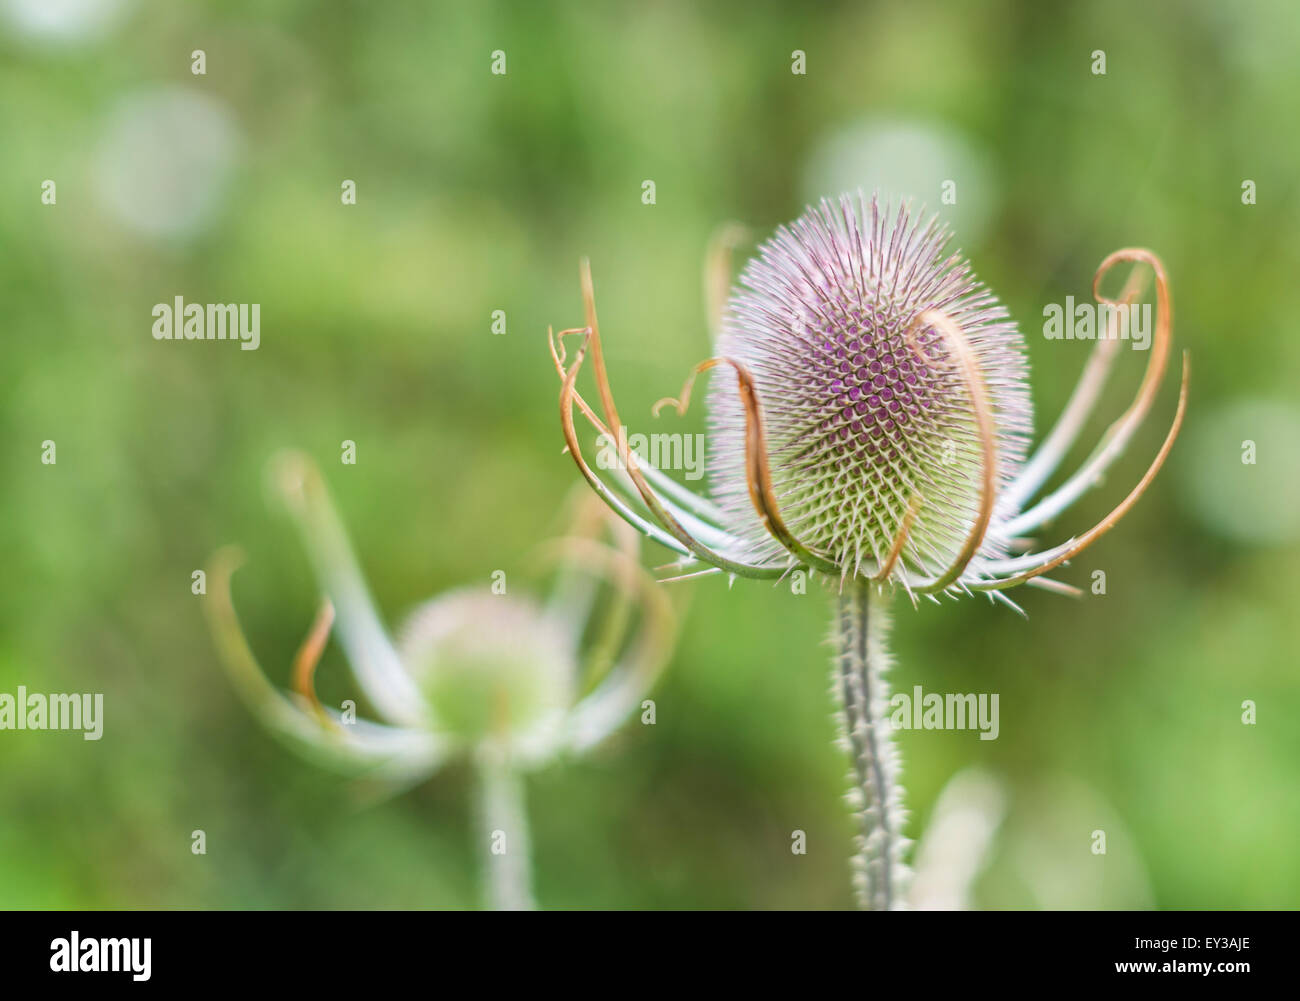 Head of a teasel plant ready to flower - Stock Image